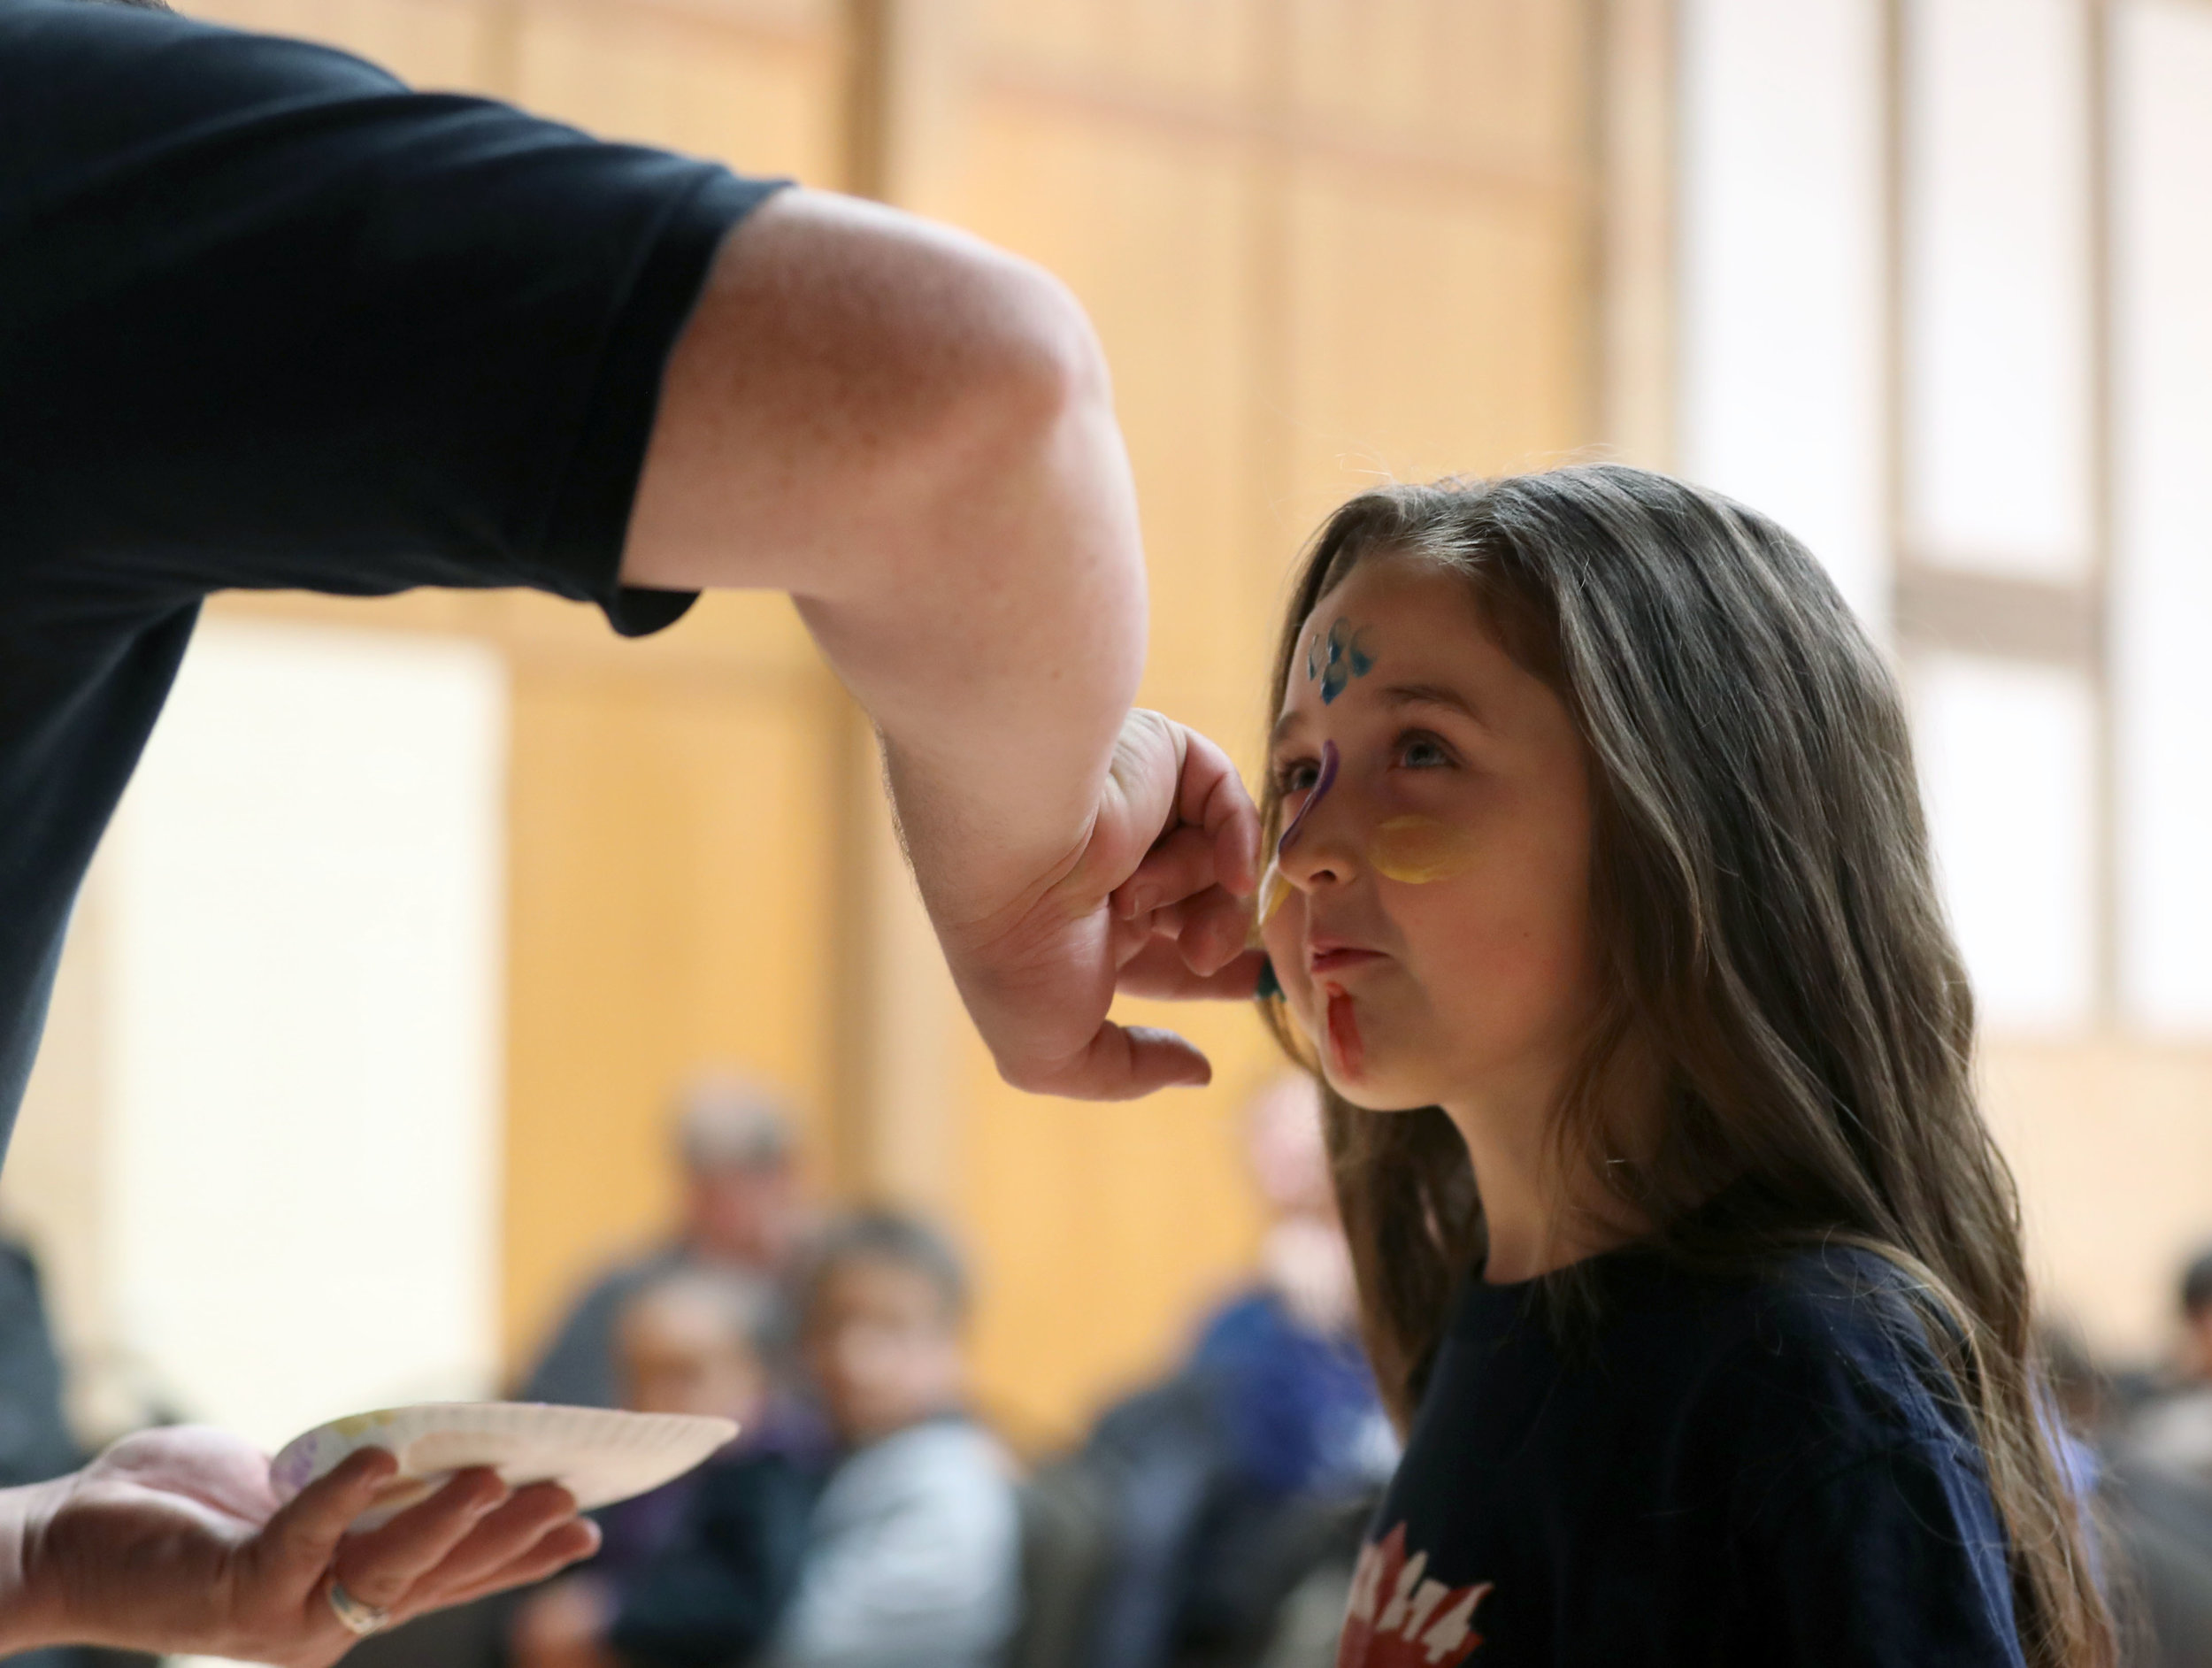 Zhane Johnson uses his hands to paint Vivica Northrup's face as she receives her Bobcat badge at the monthly Pack 274 meeting at First Christian Church in Texas City on Thursday, Nov. 15, 2018. Each color represents a different value and lesson Boy Scouts of America should emulate and learn.